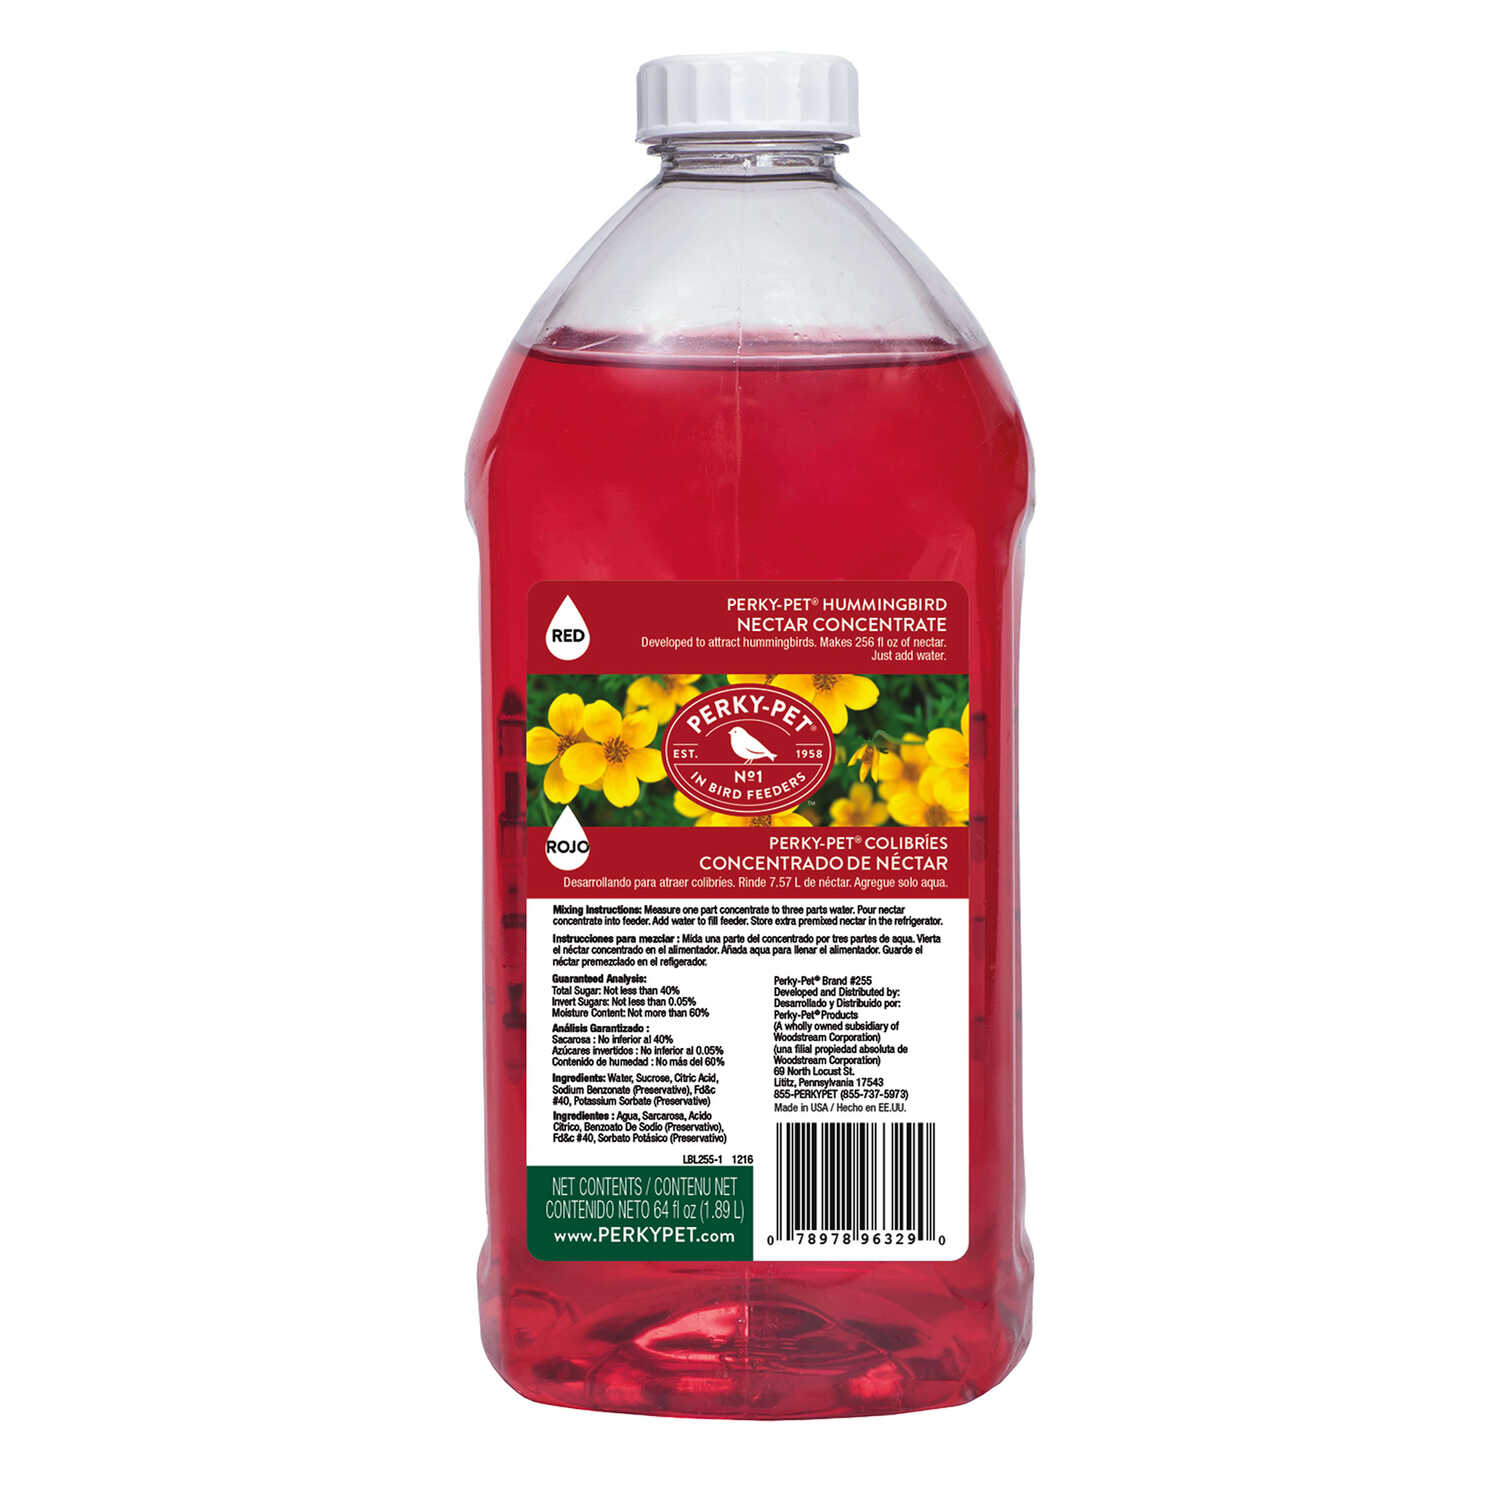 Perky-Pet  Hummingbird  Nectar Concentrate  Sucrose  64 oz.